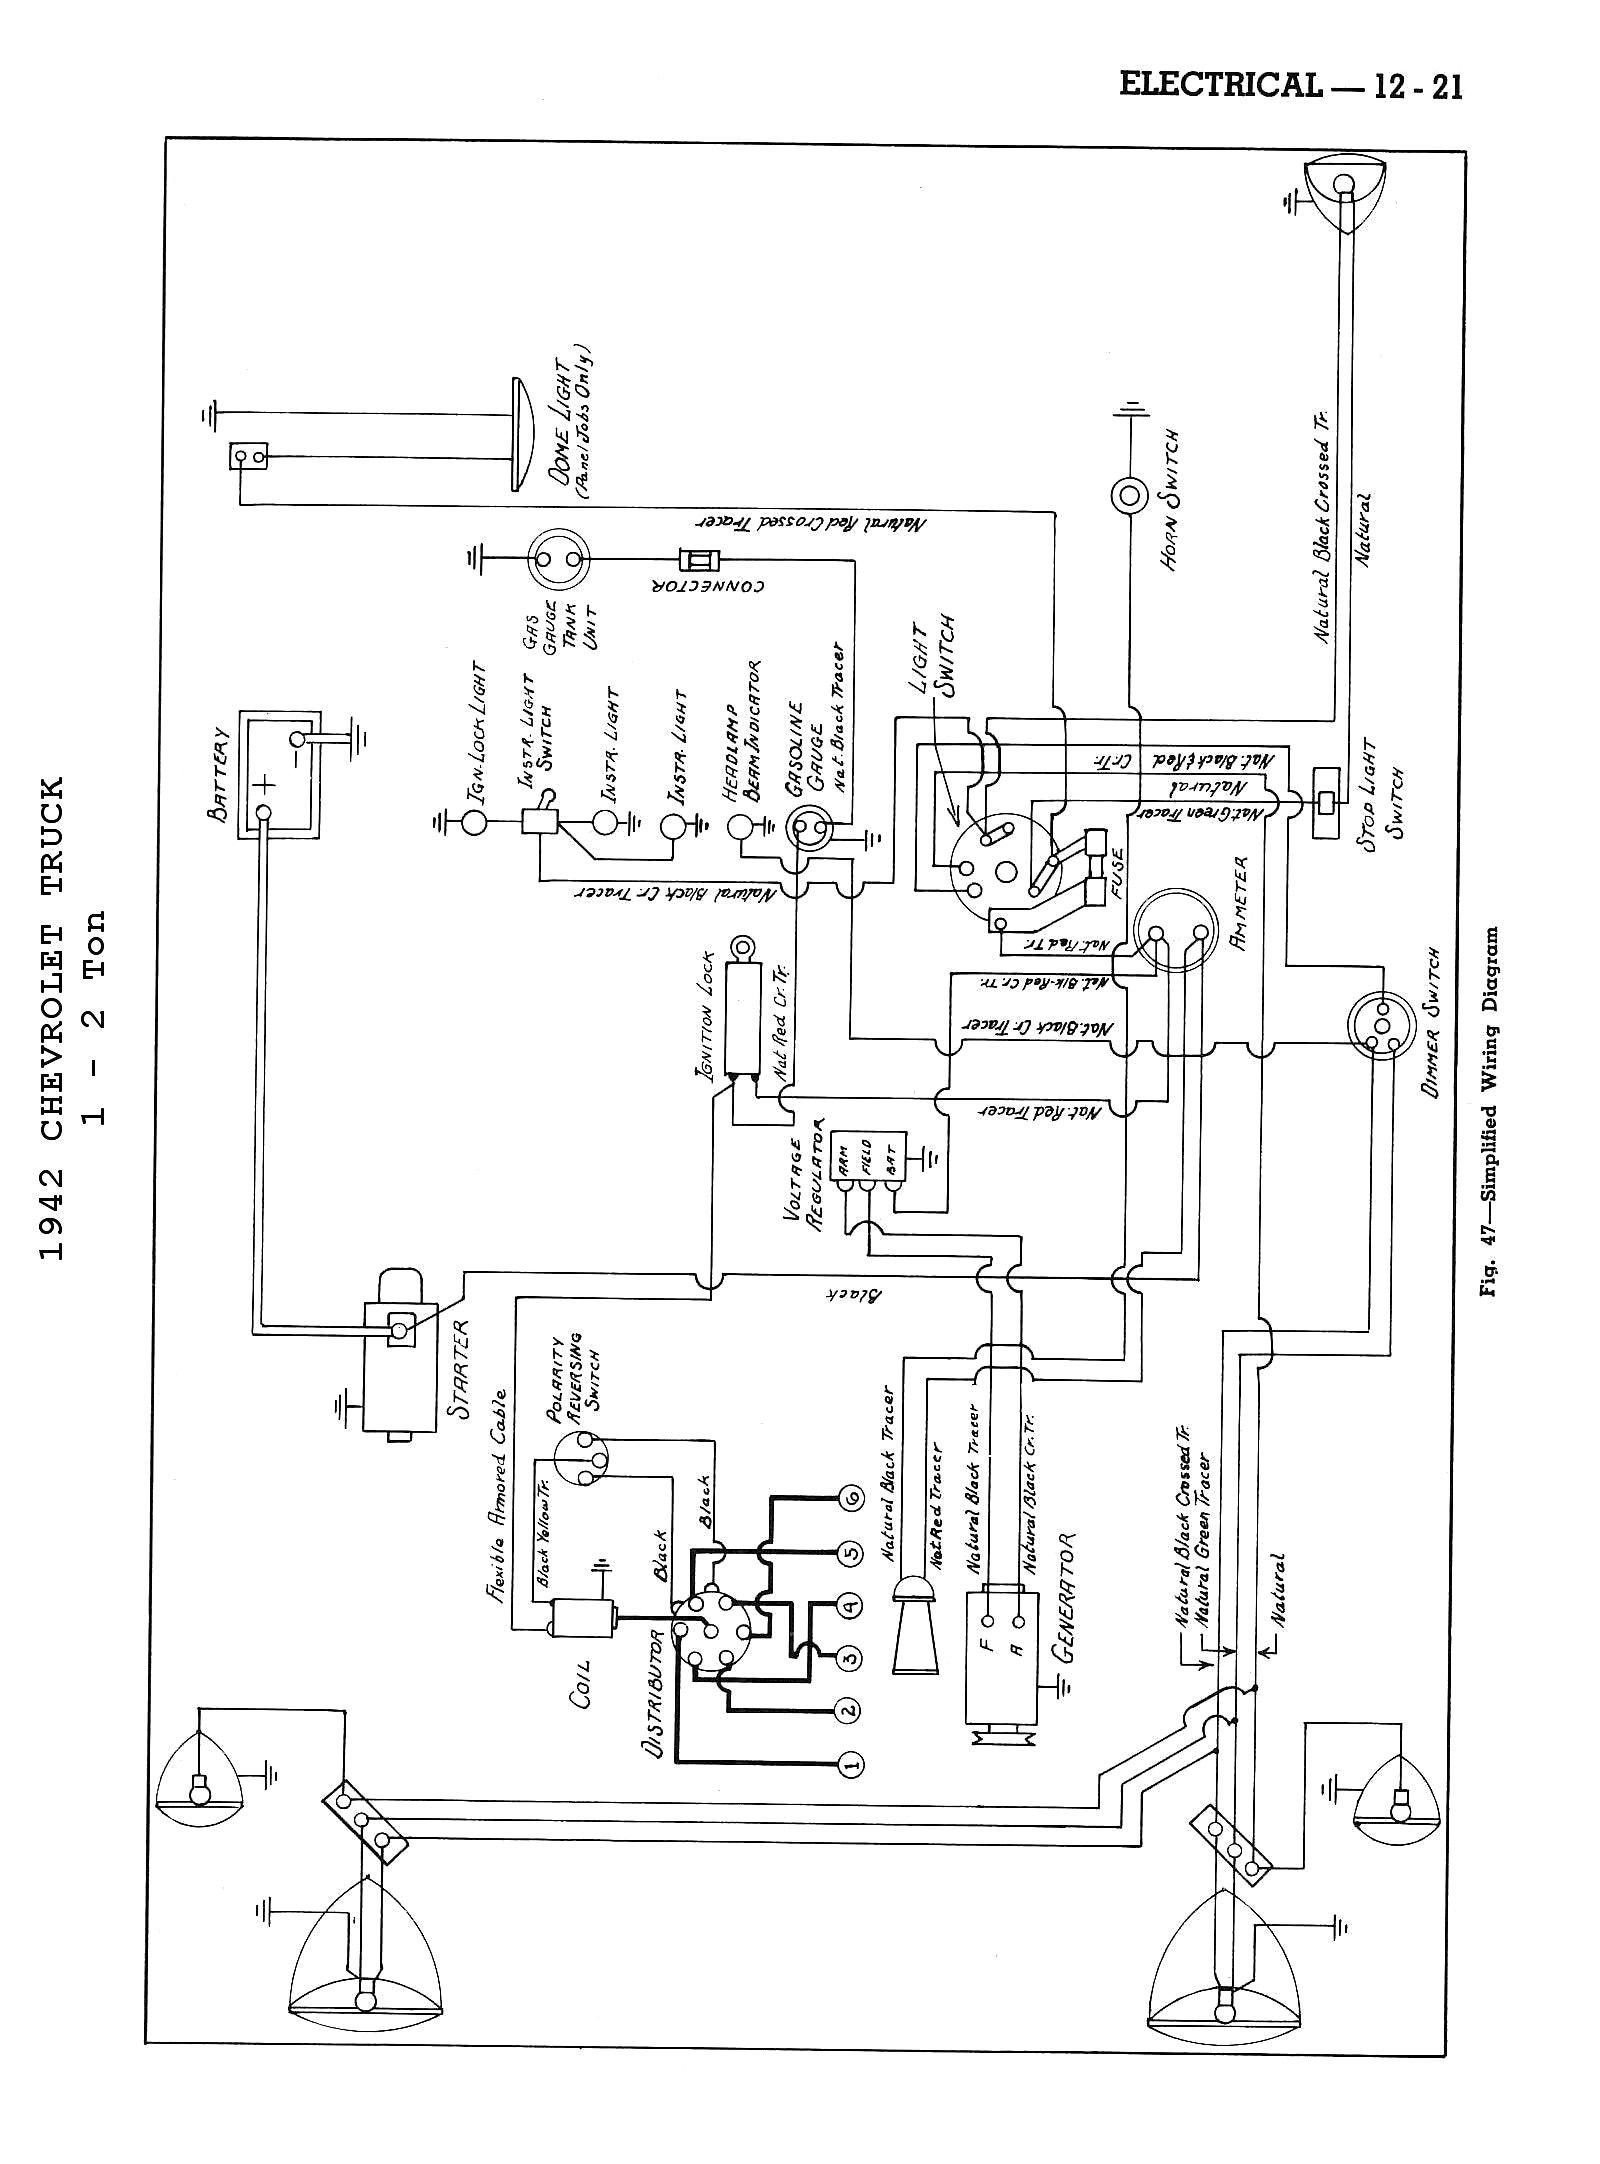 suburban water heater wiring diagram electrical in 2019 kenmore  kenmore water heater wiring diagram #6